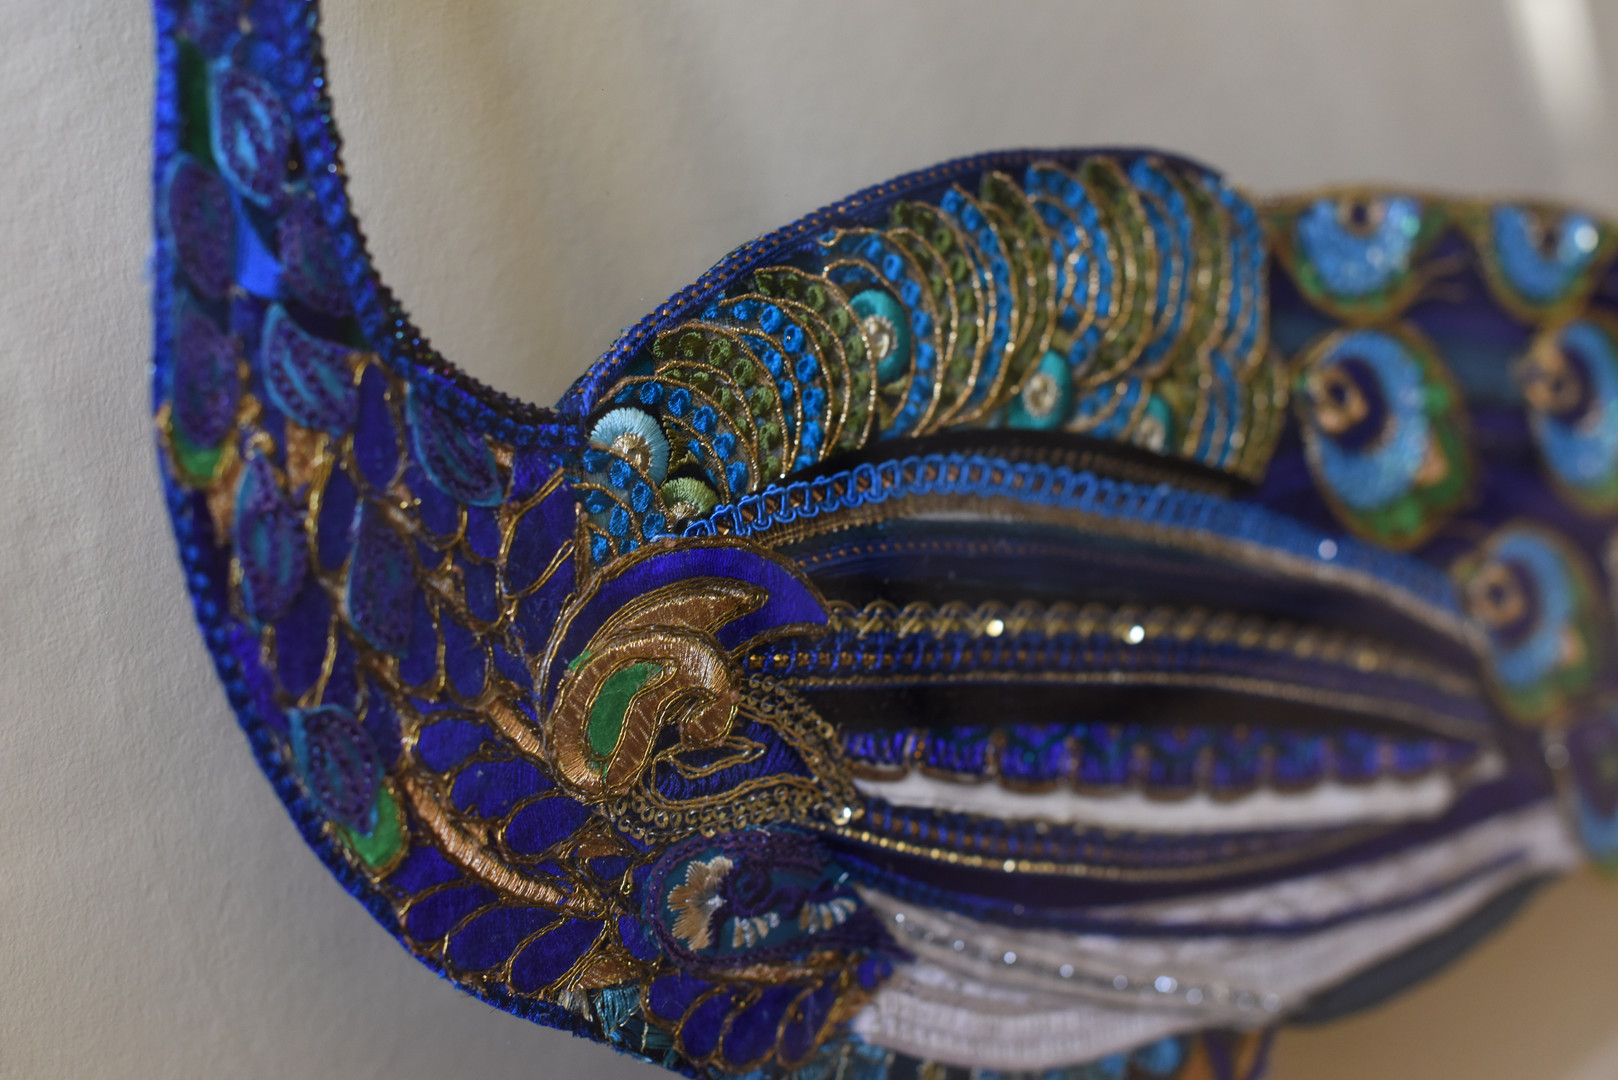 Male Peacock Side Detailing - Lily Adele Art